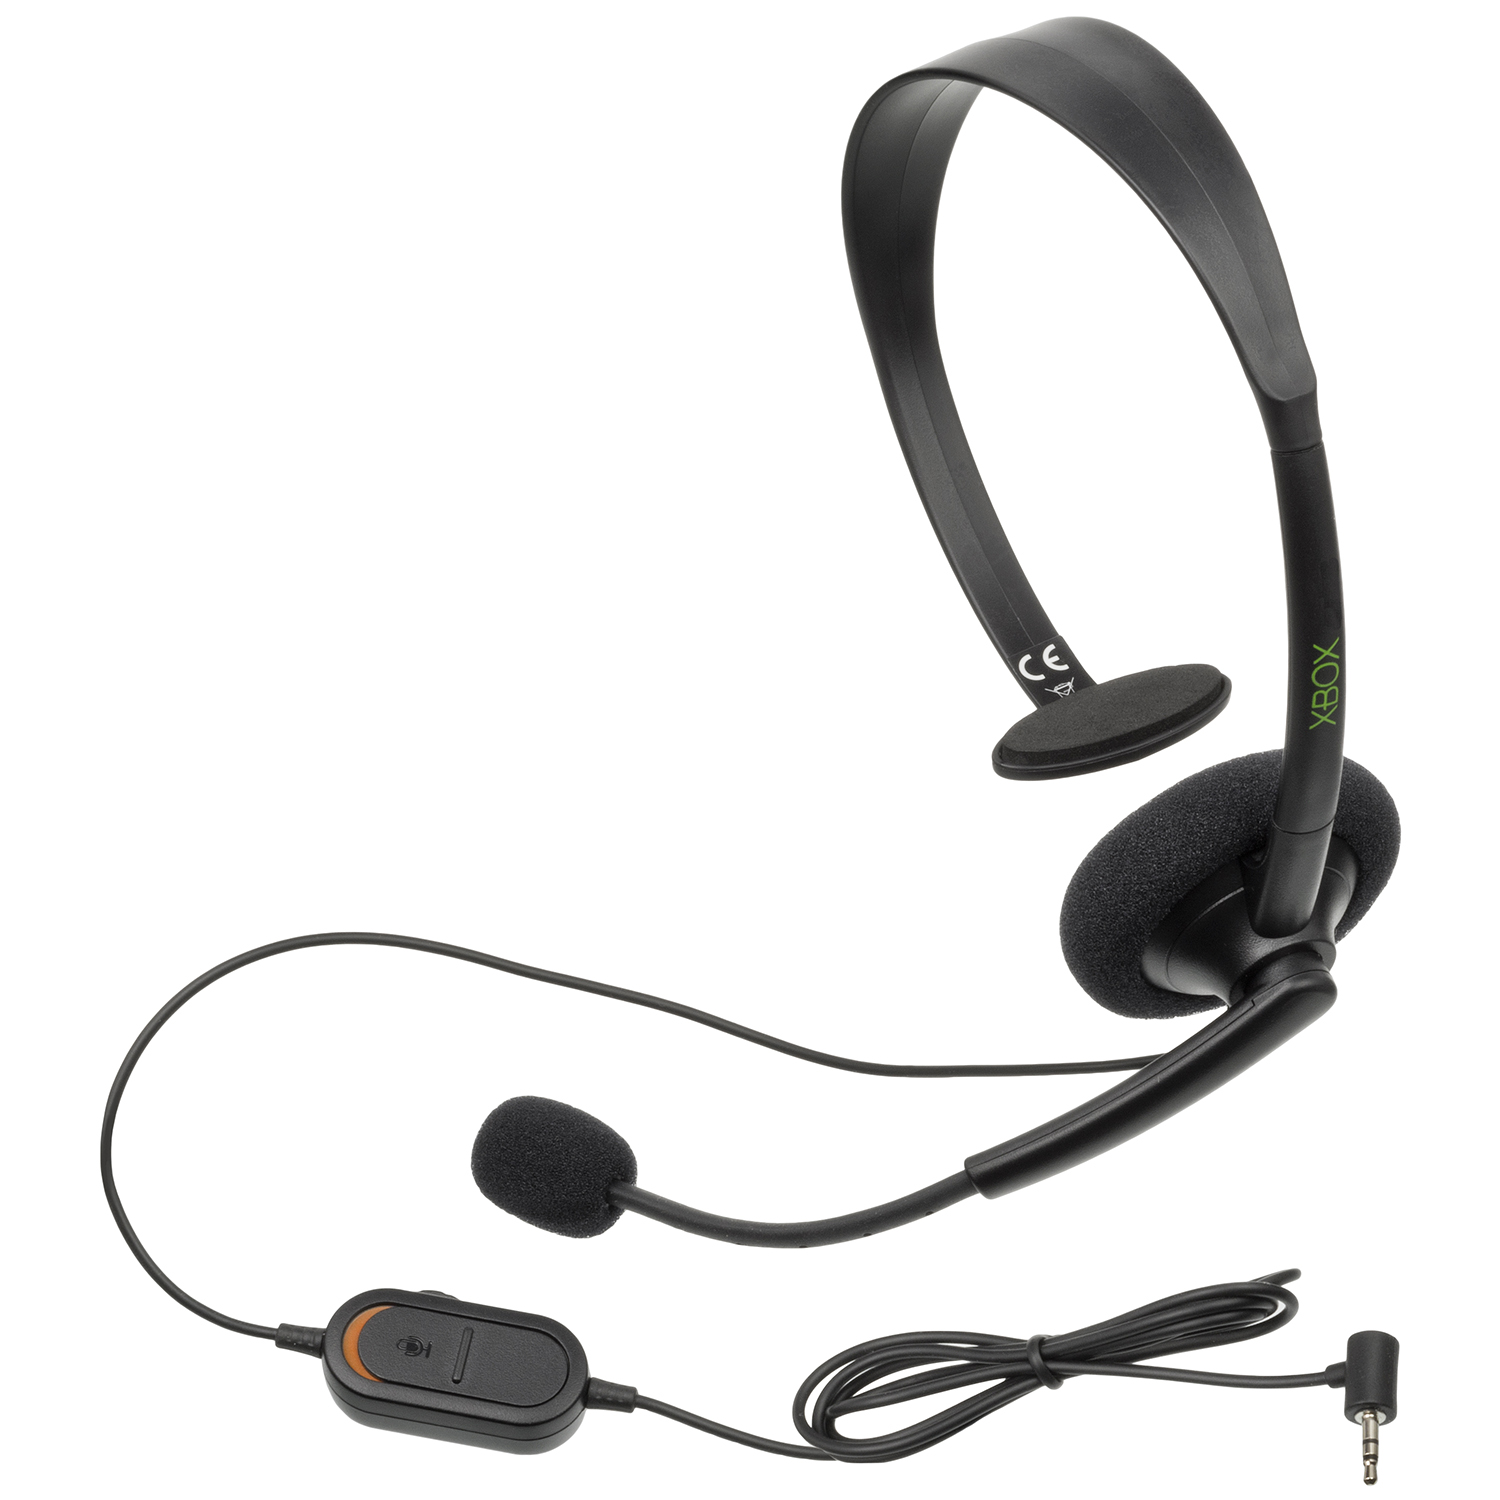 Refurbished Microsoft Xbox One Wired Headset With Microphone And